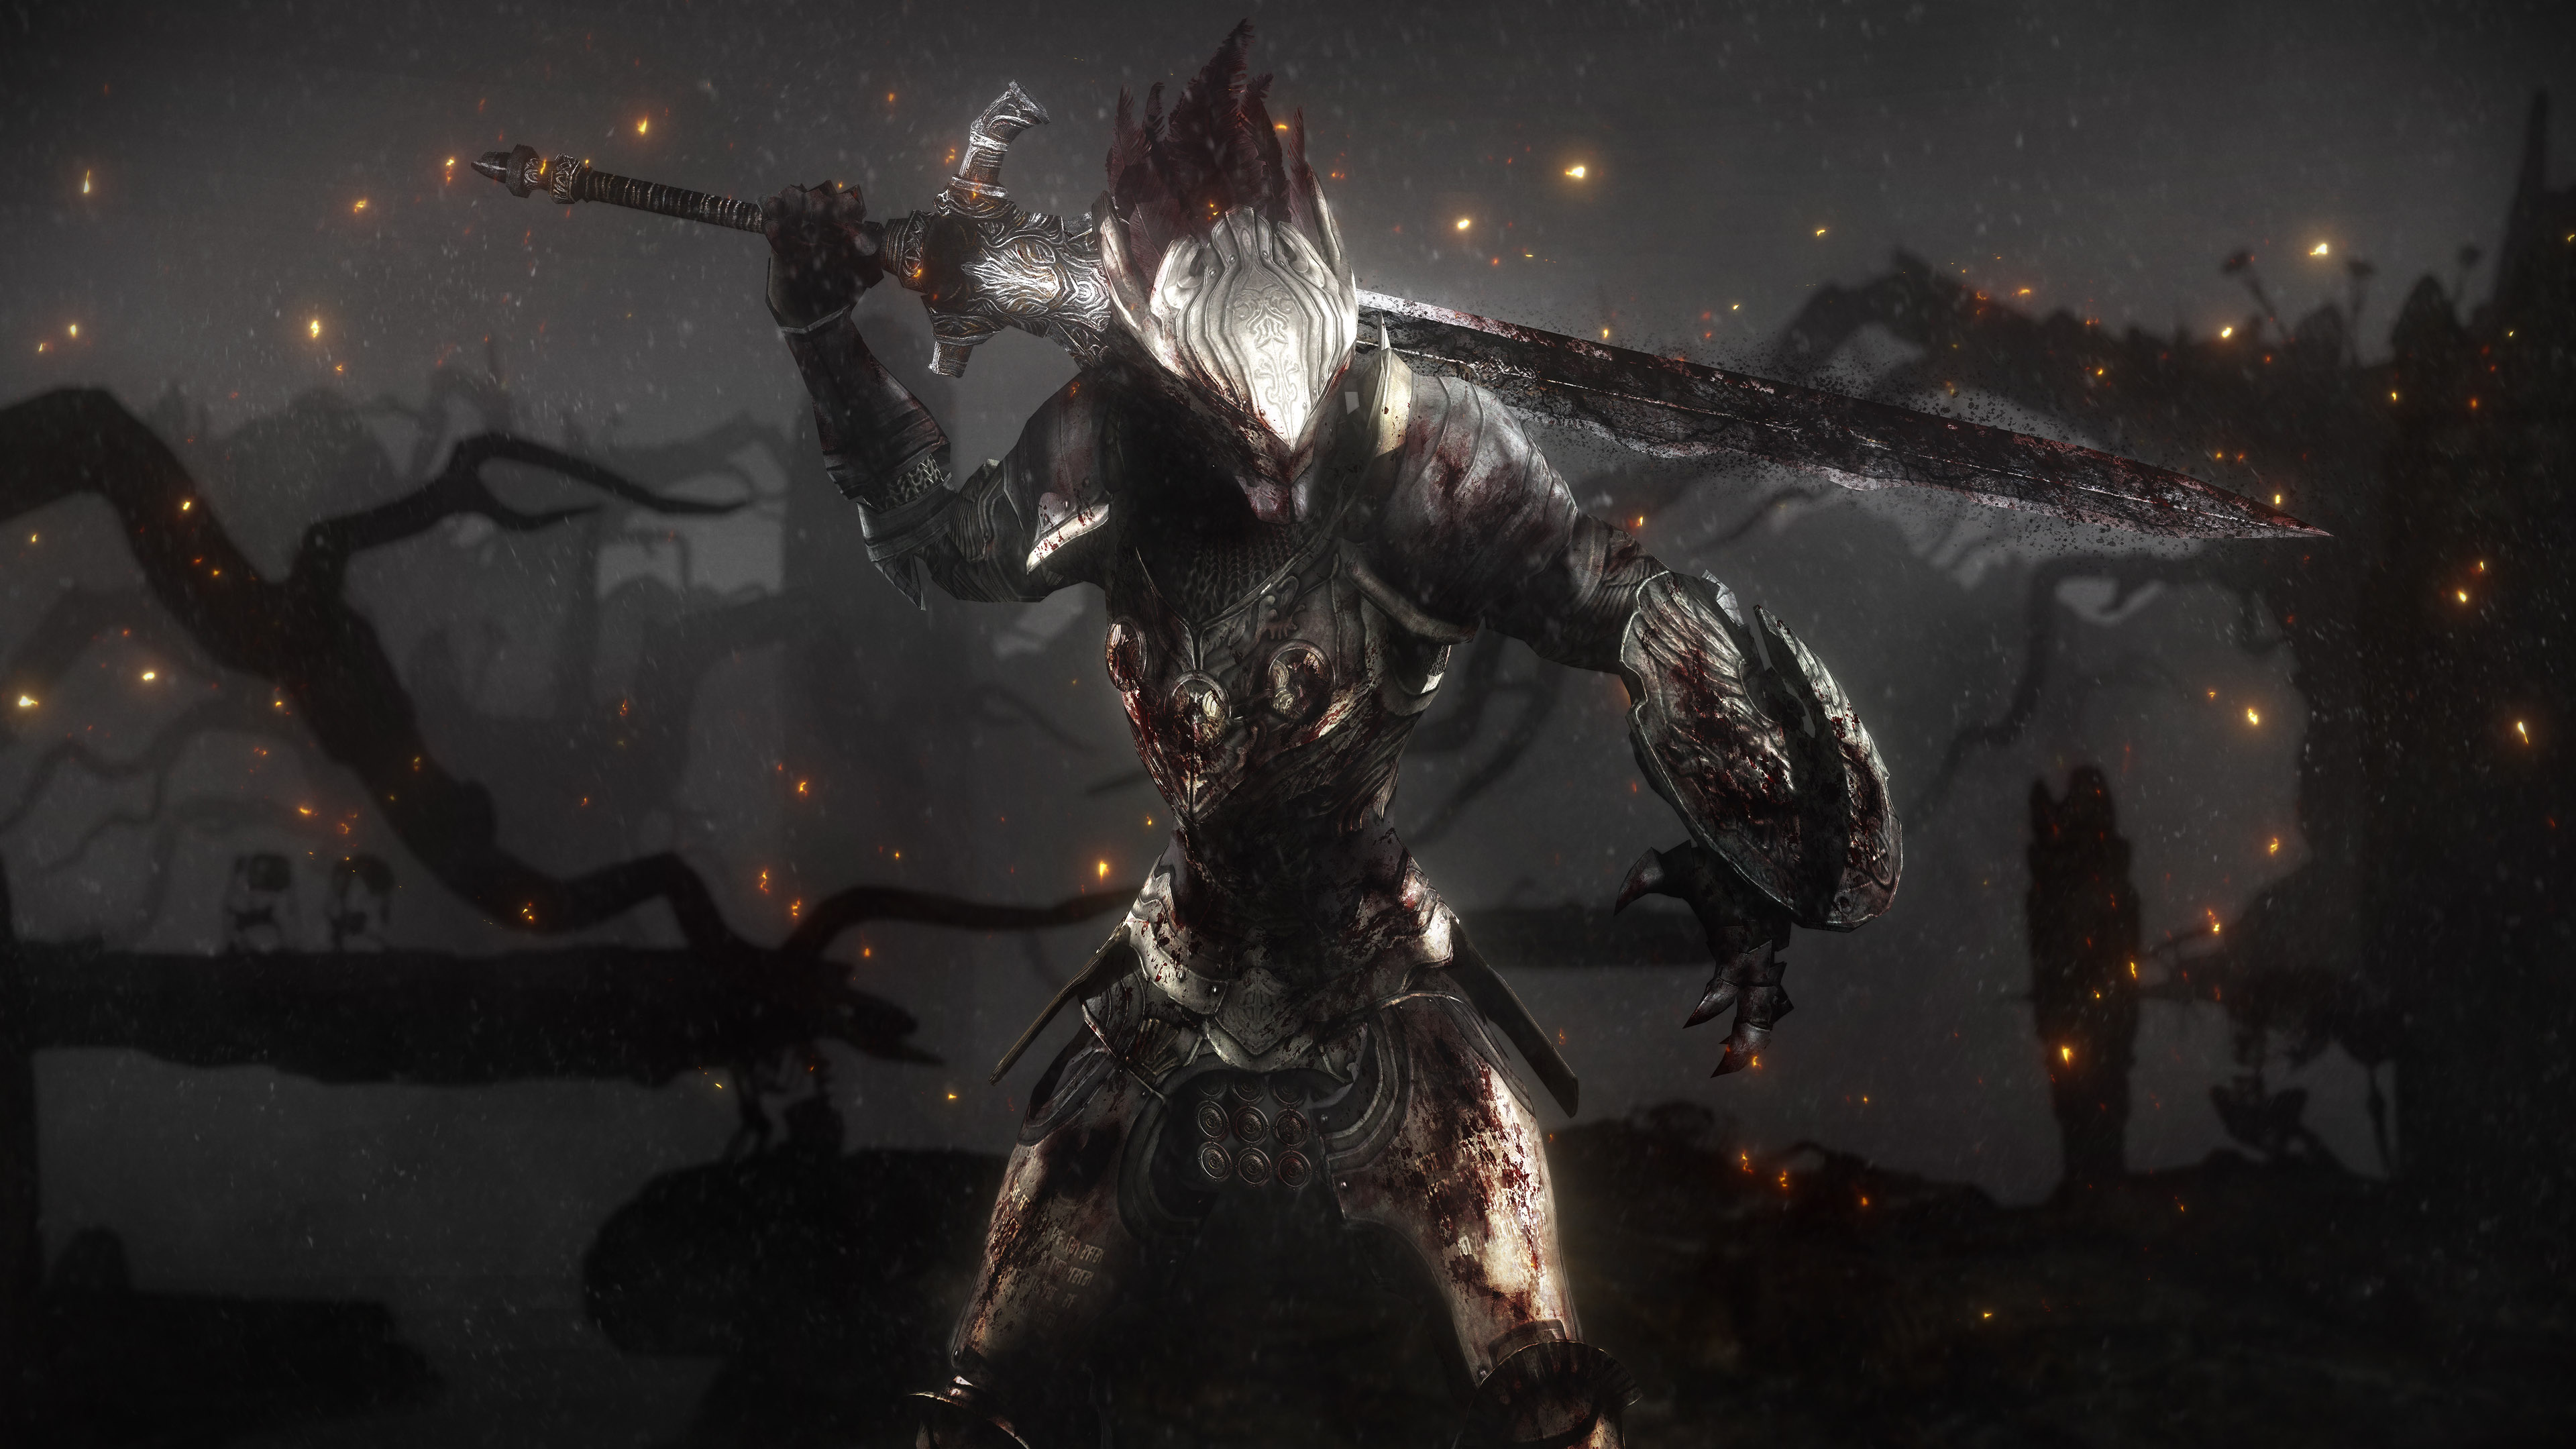 Dark Souls 3 Hd Wallpaper: Dark Souls 4k Ultra HD Wallpaper